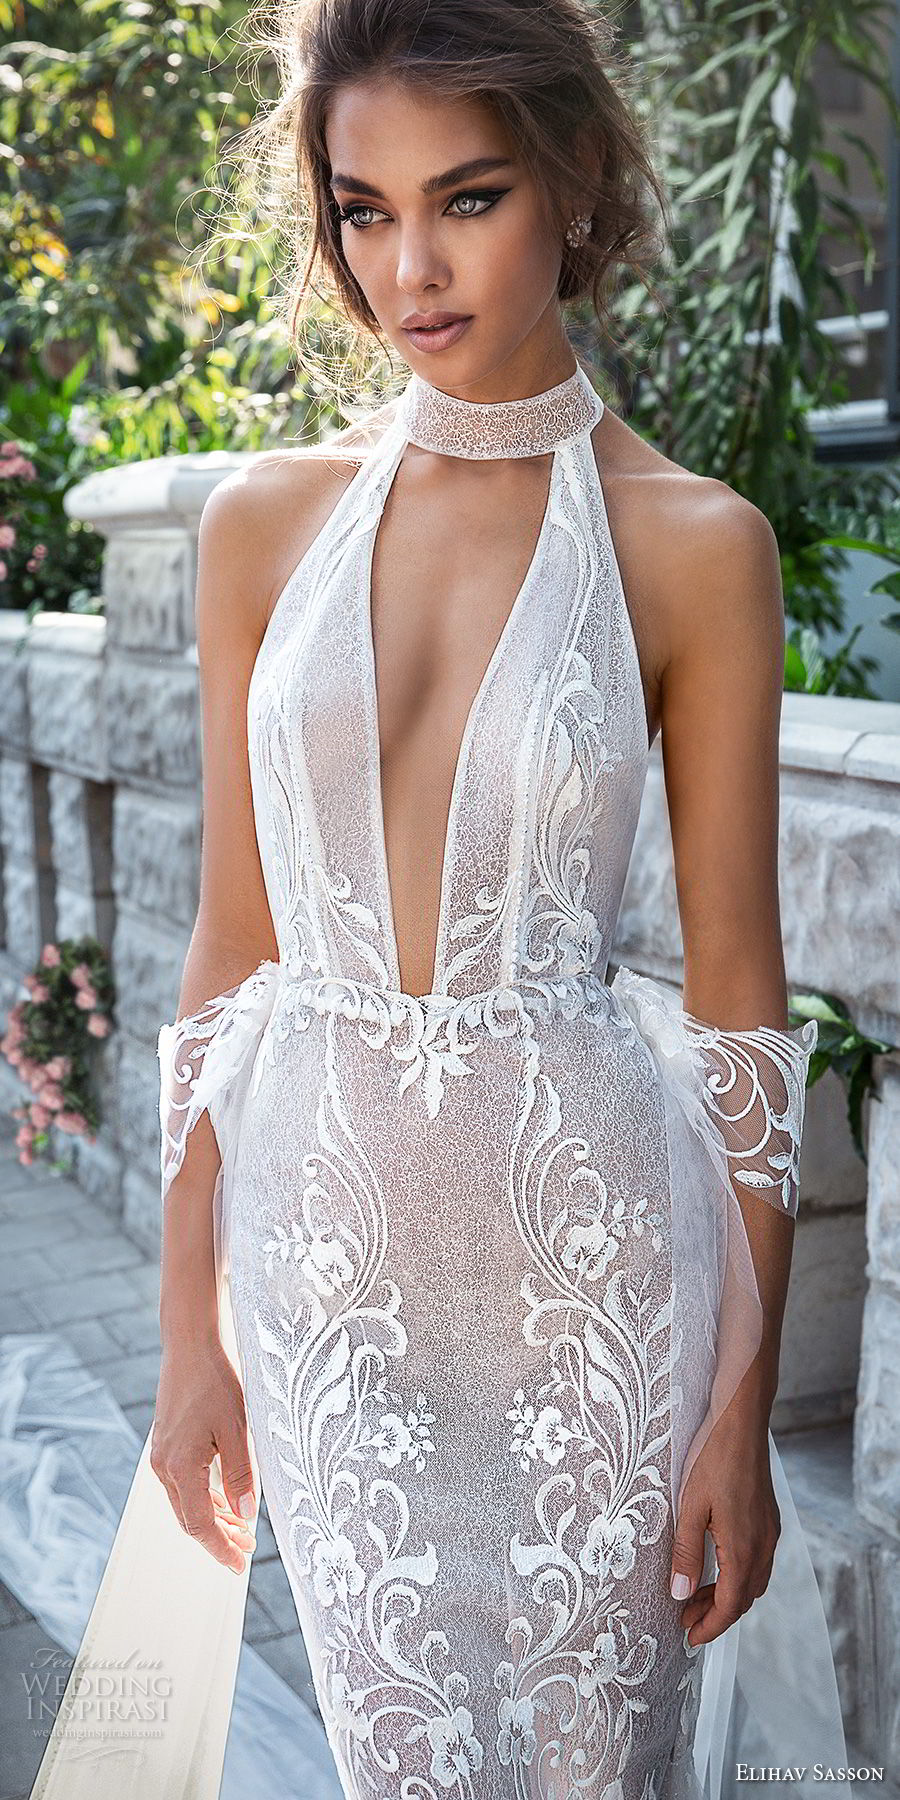 elihav sasson 2018 capsule bridal sleeveless high neck deep plunging v neck full embellishment sexy elegant fit and flare mermaid wedding dress open back chapel train (8) zv